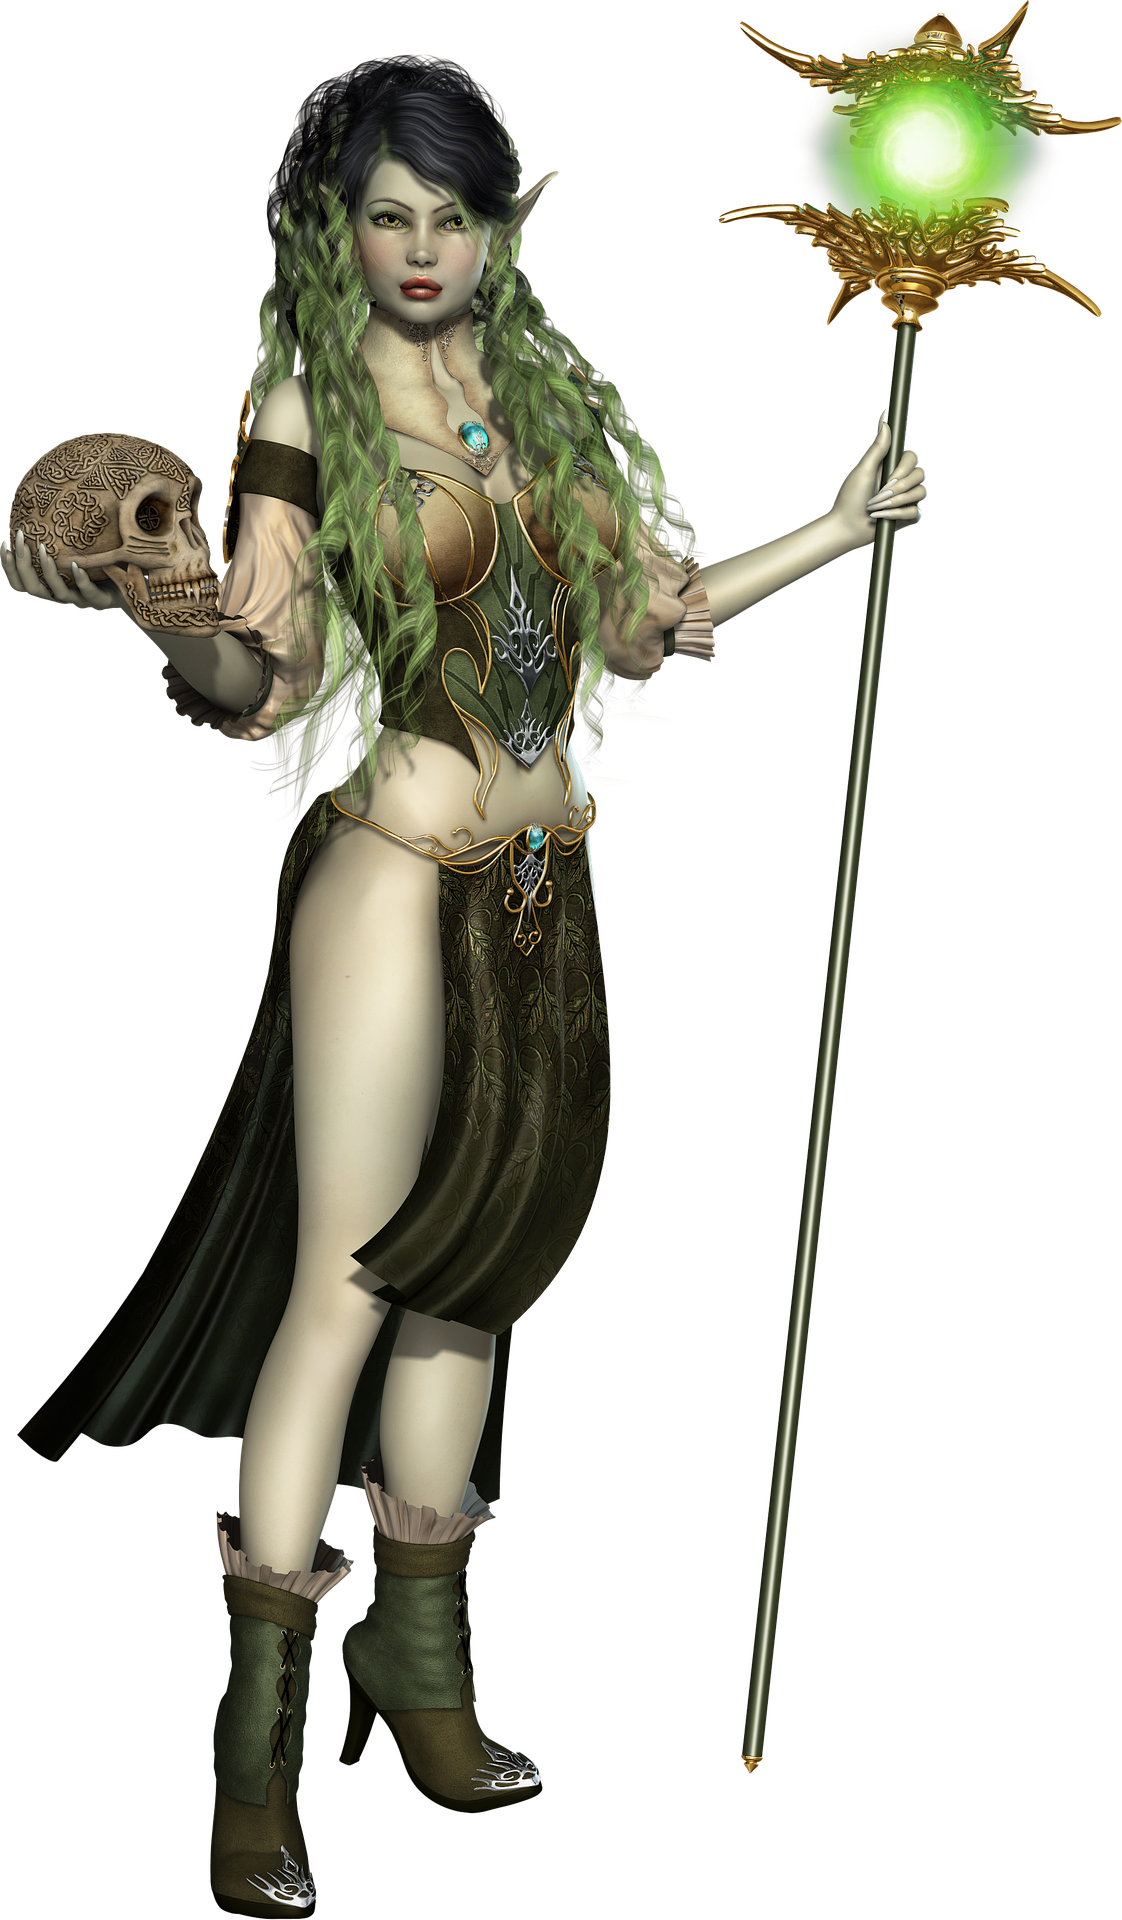 Elf transparent female. Png image purepng free